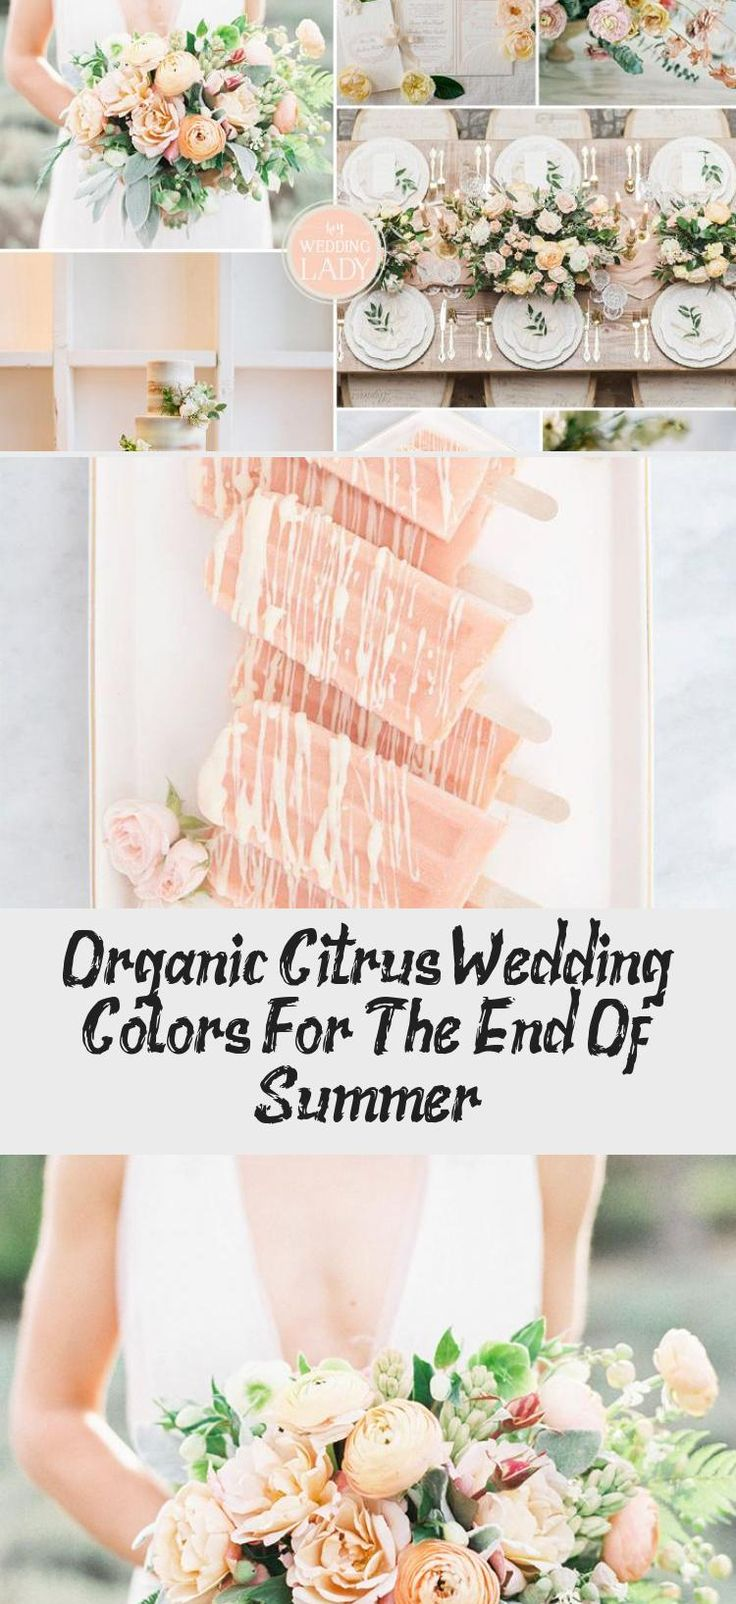 Organic Citrus Wedding Colors for the End of Summer #gardenweddingShoes #gardenweddingCeremony #gardenweddingAltar #gardenweddingStage #gardenweddingTheme